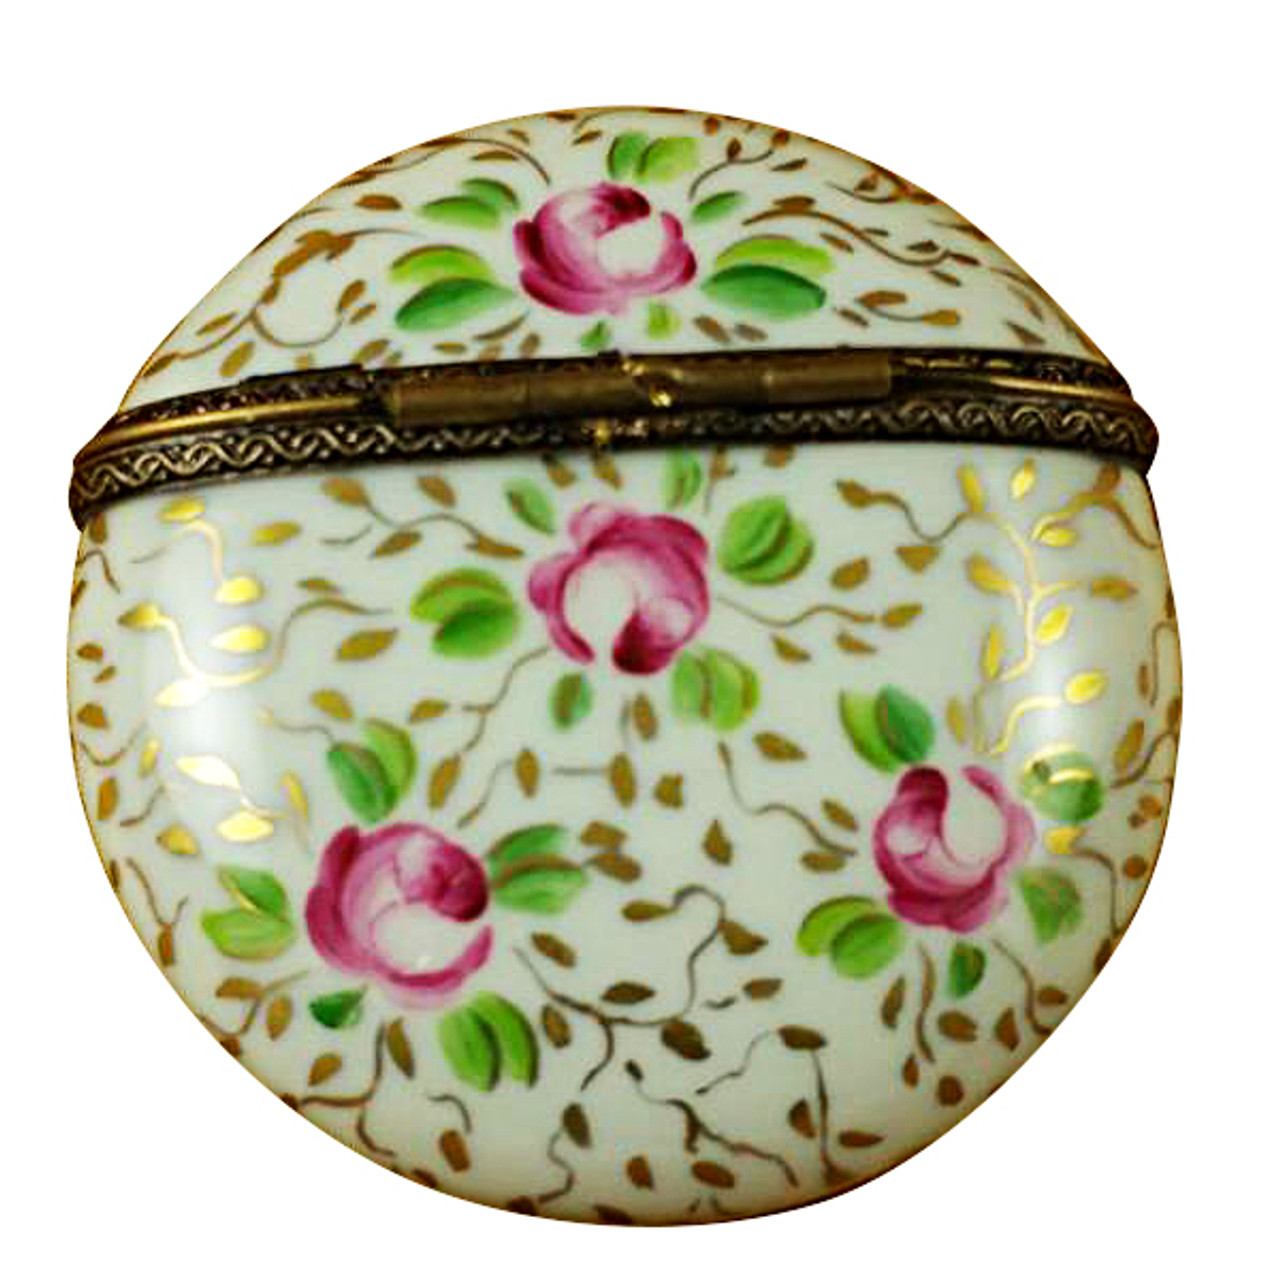 Limoges Imports Round W/ Gold & Pink Flowers Limoges Box